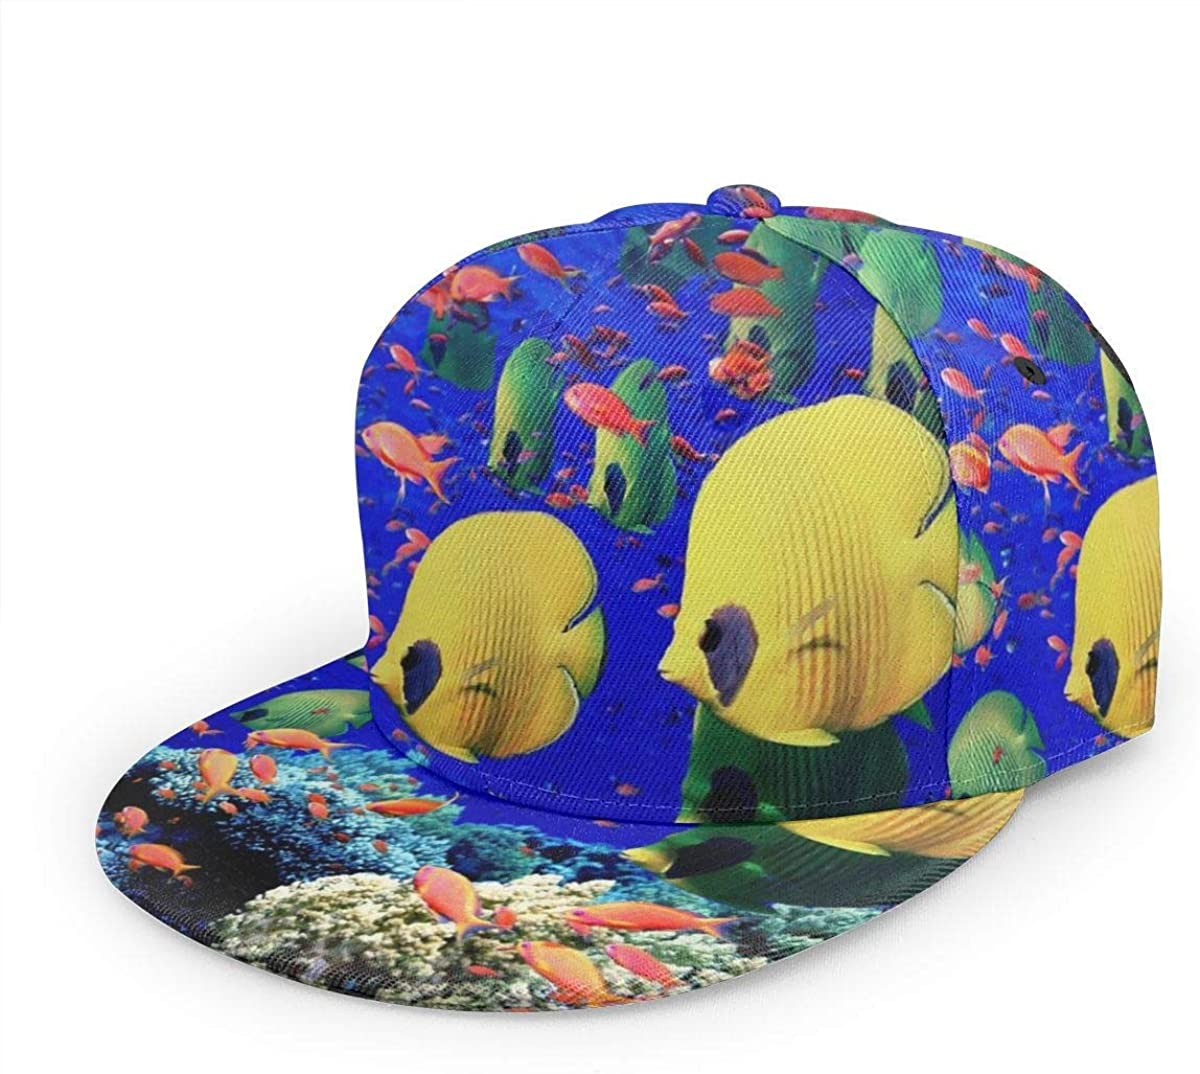 Colorful Tropical Underwater Sea World Fish Lightweight Unisex Baseball Caps Adjustable Breathable Sun Hat for Sport Outdoor Black